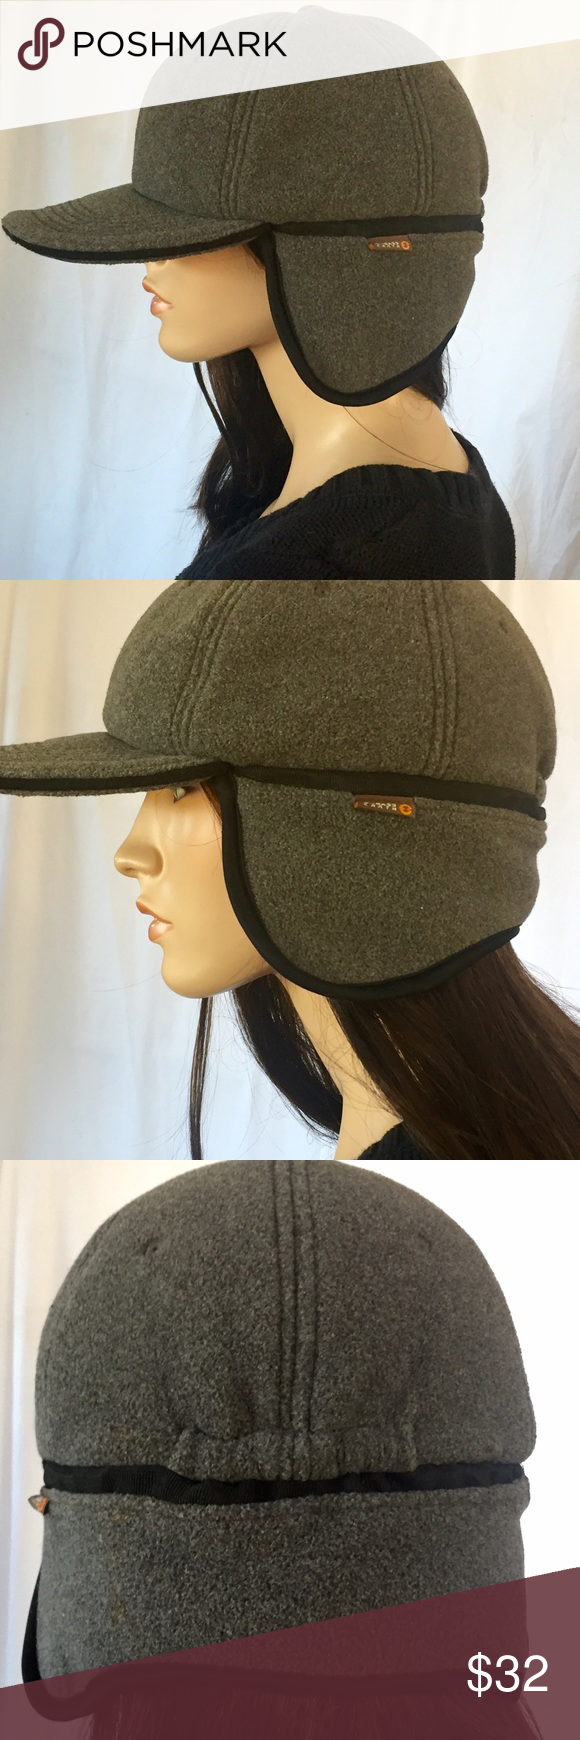 7eb8a05170625 GH BASS Earth polar fleece RAD cap hat ear flaps Gray fleece. Perfect for  colder weather or just looking RAD! Adult one size Bass Accessories Hats